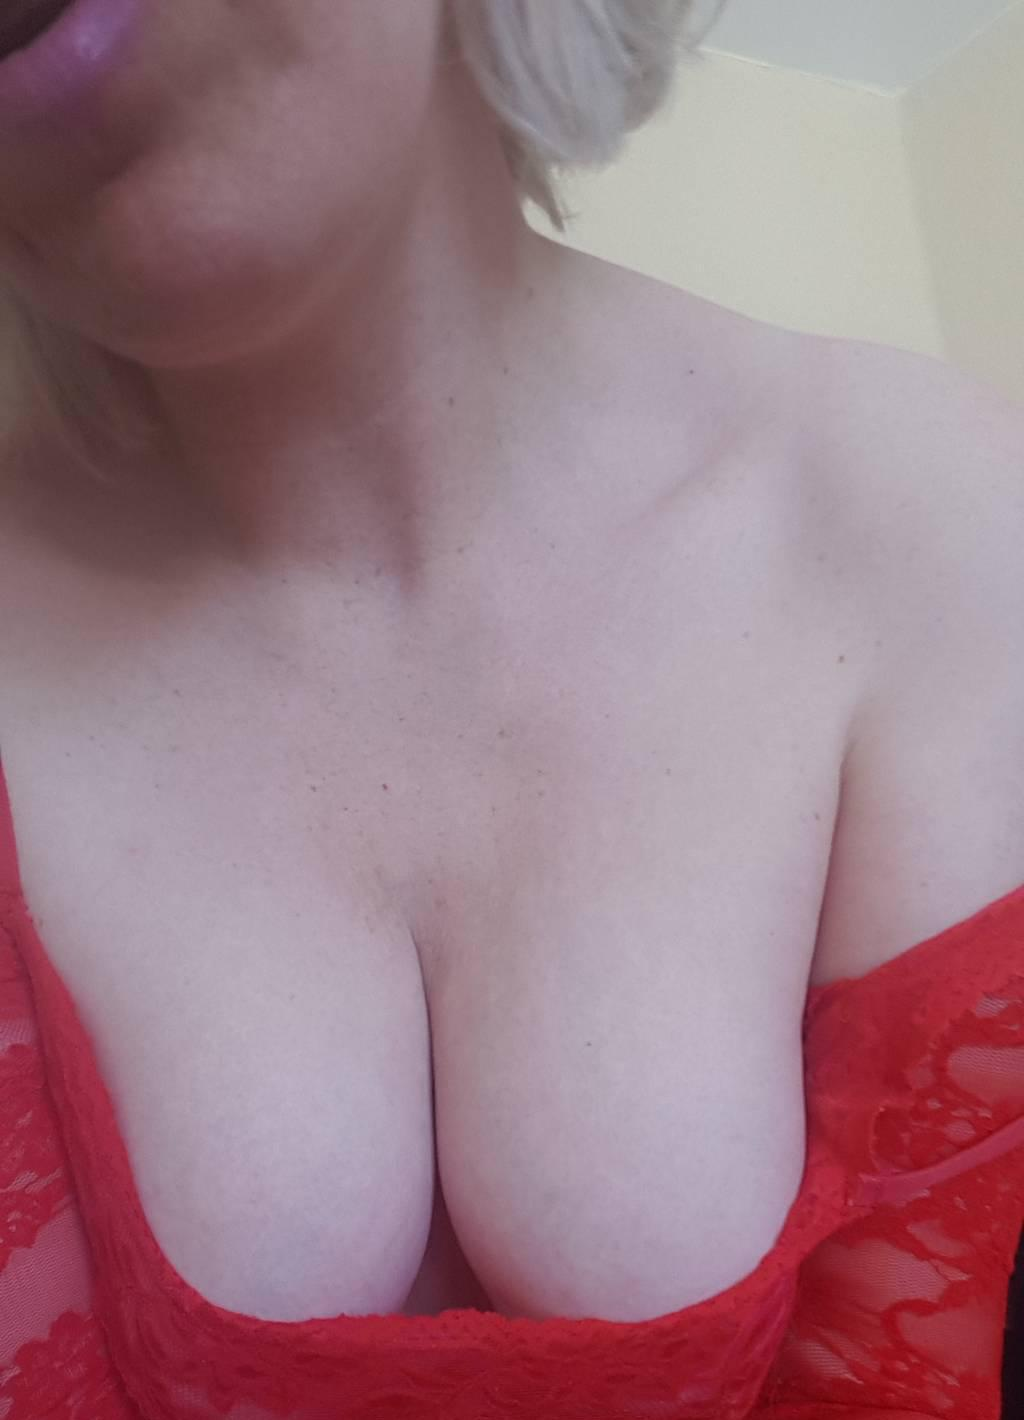 140hh 240hr. 35+ Please! For The Mature Gentleman. Xoxo